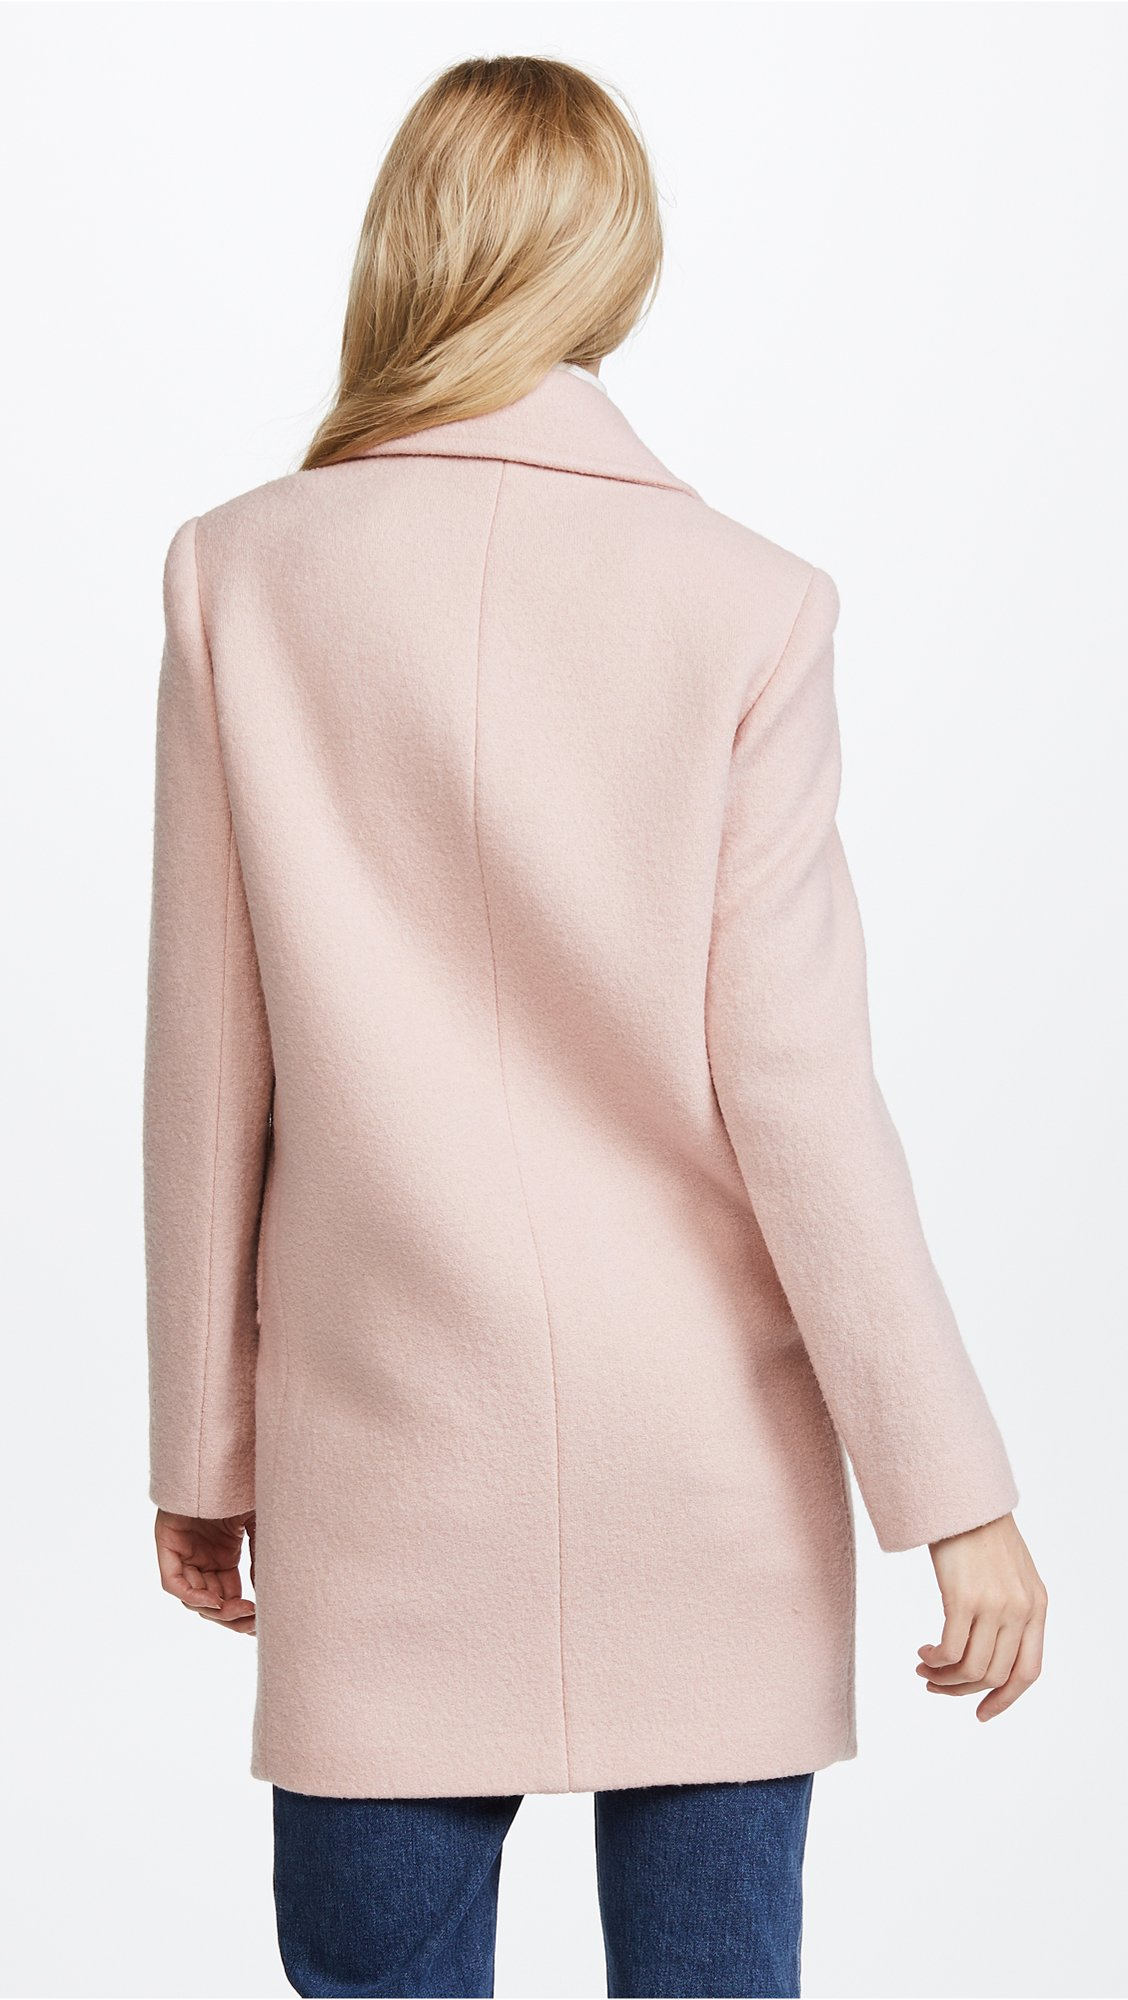 Theory Women's Cape Coat, Chalk Pink, S by Theory (Image #3)